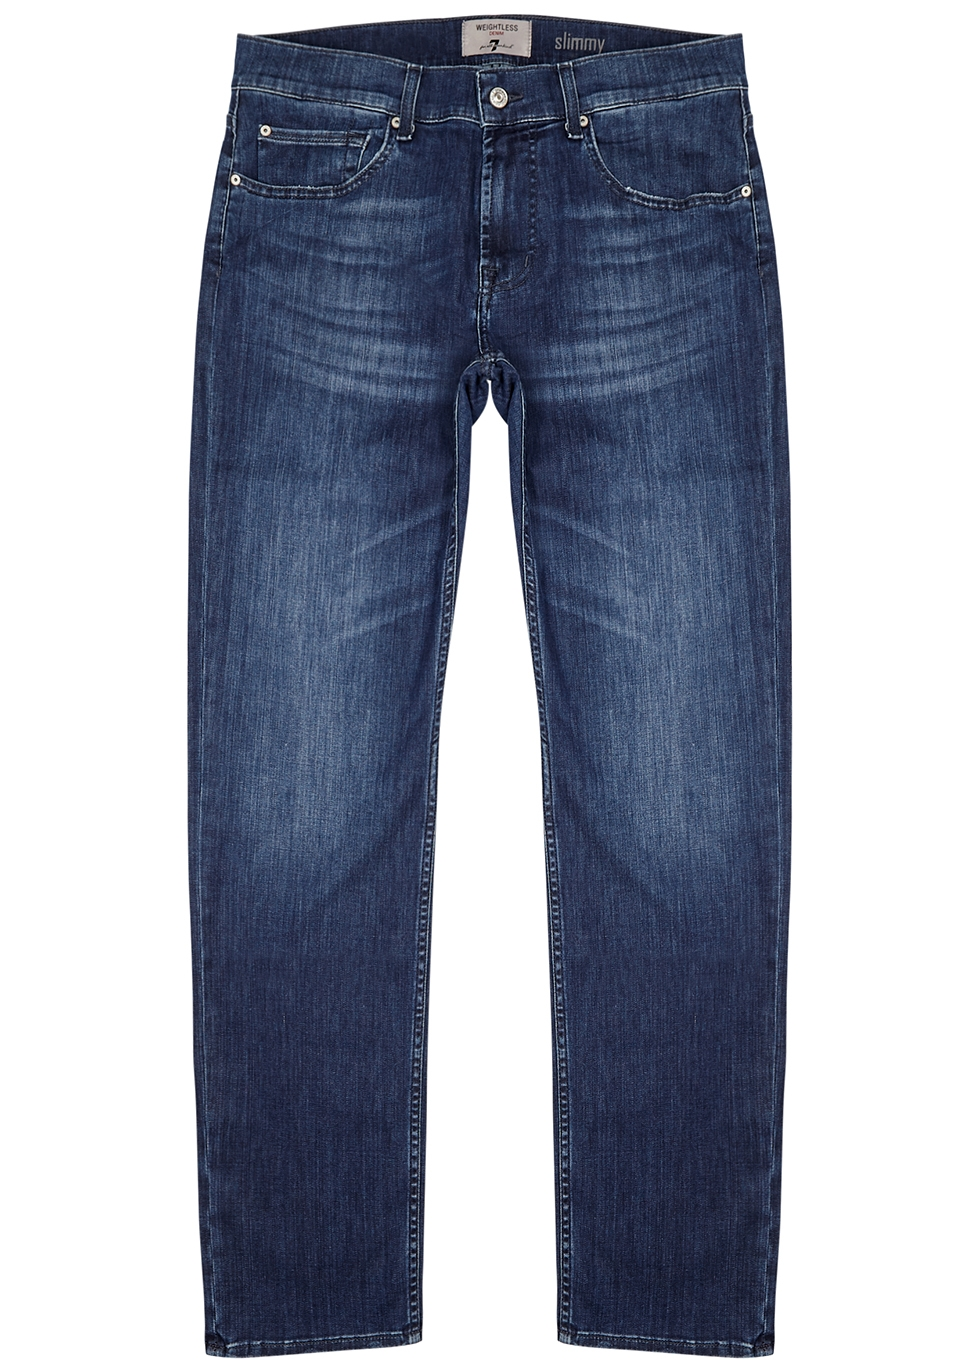 Slimmy tapered slim-leg jeans